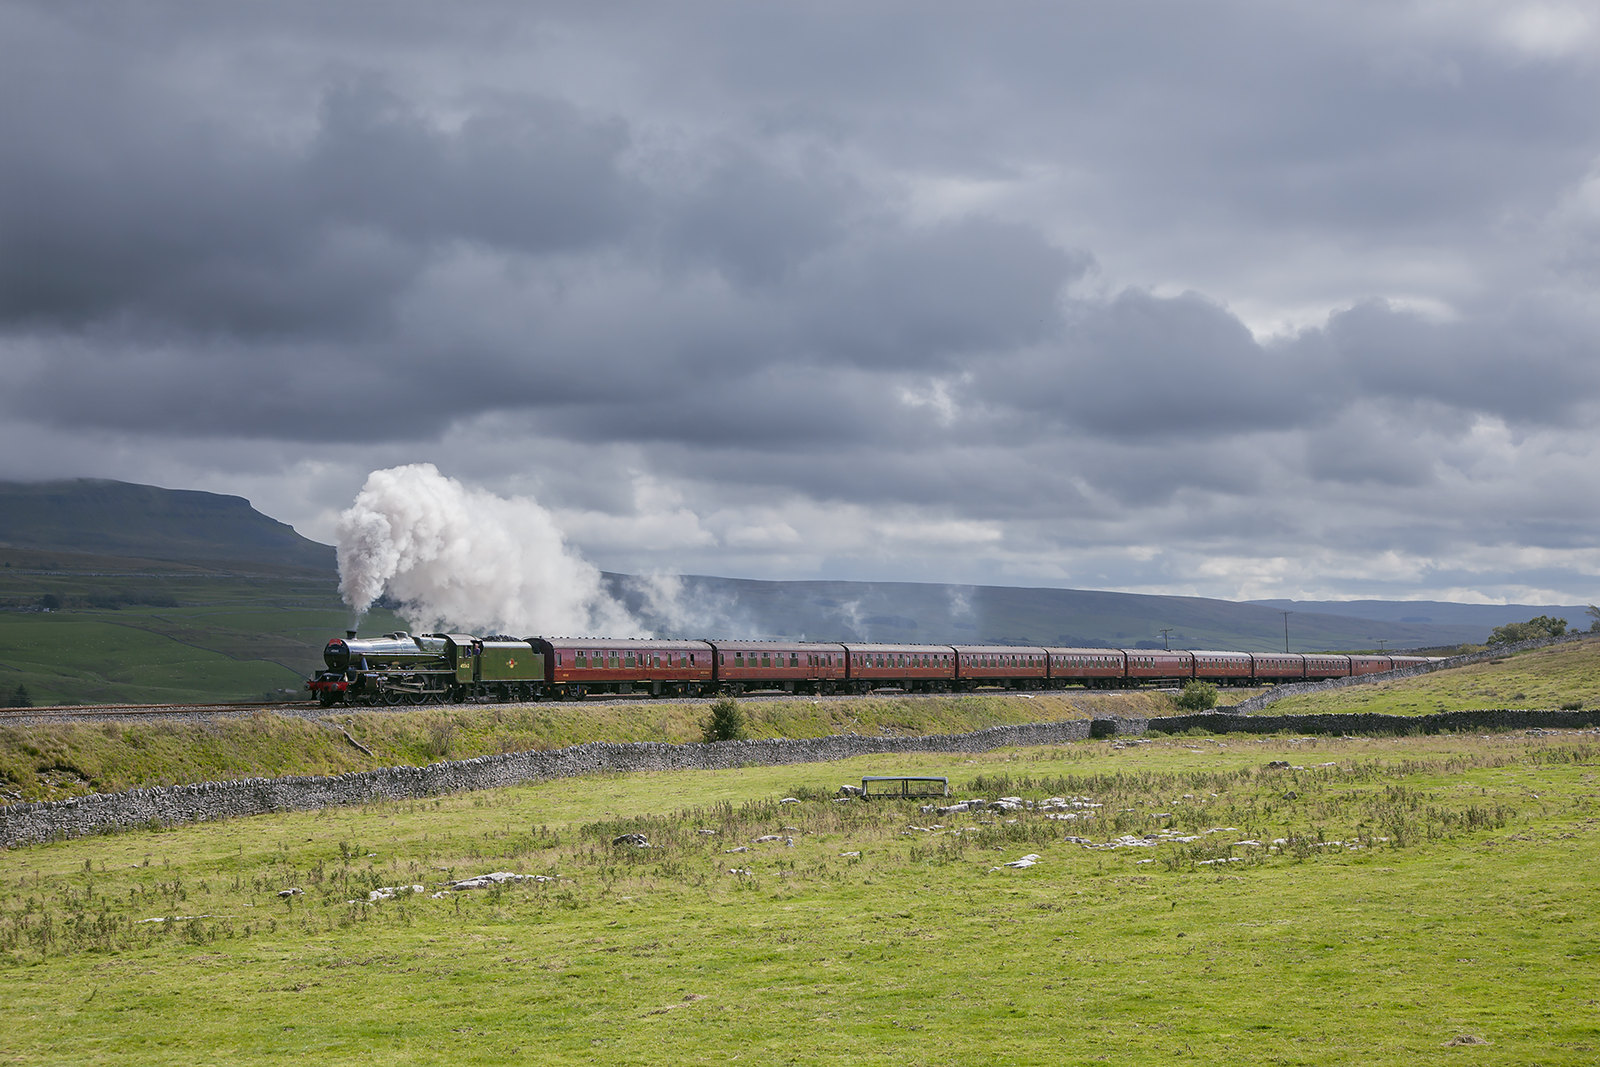 The end of 'the long drag' from Settle Junction to Blea Moor is in sight for driver Chris Cubitt as Jubilee No.45699 'Galatea', masquerading as 45562 'Alberta' forges north with the down Waverley past Selside Shaw during a dramatic burst of sunshine.